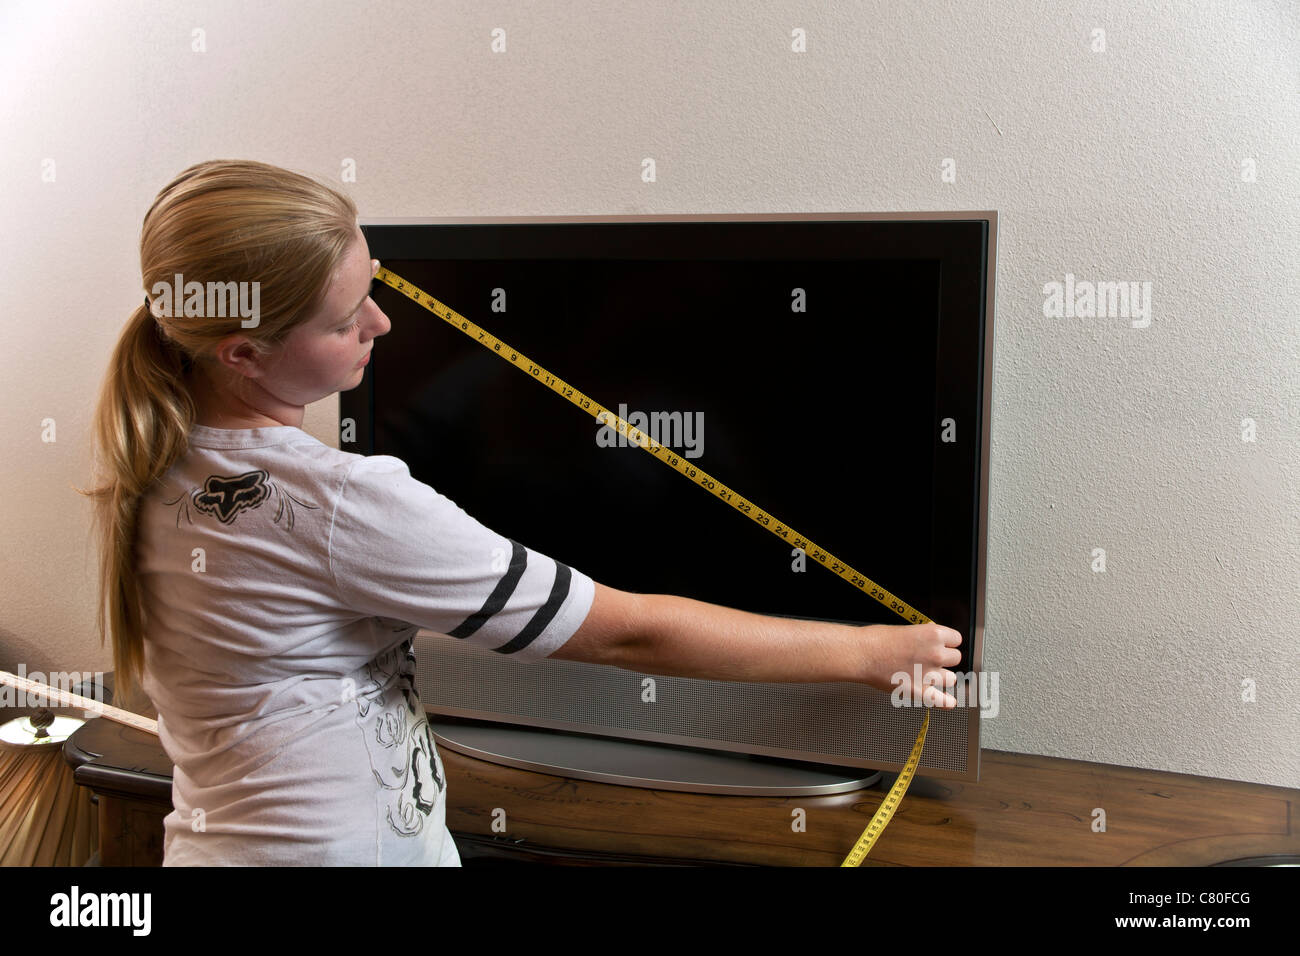 Teenage Girl Measures The Dimensions Of A 32 Inch Tv Screen Mr